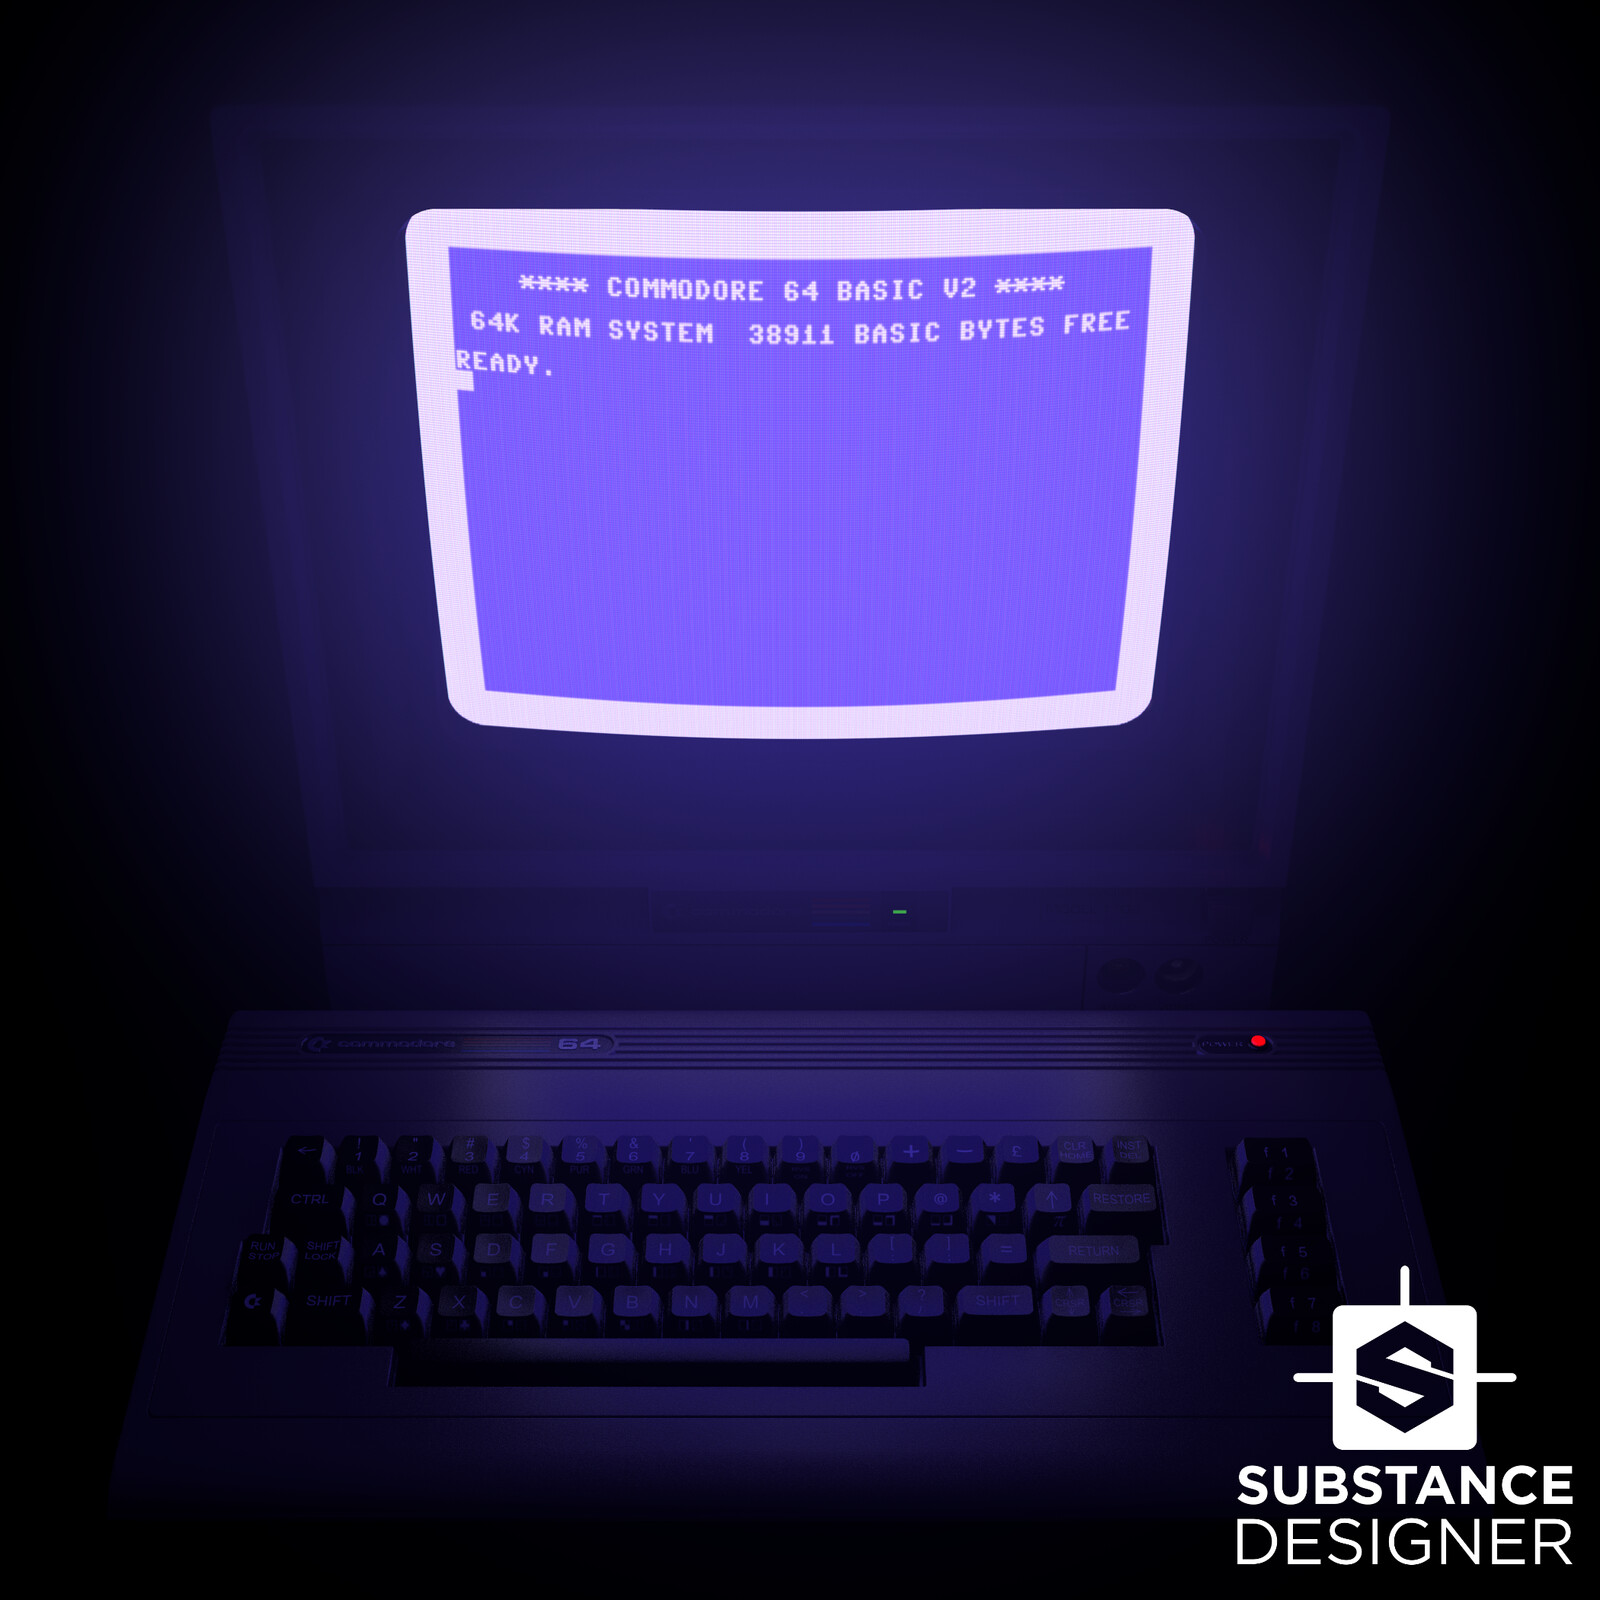 Substance Designer - Fully Procedural Commodore 1702